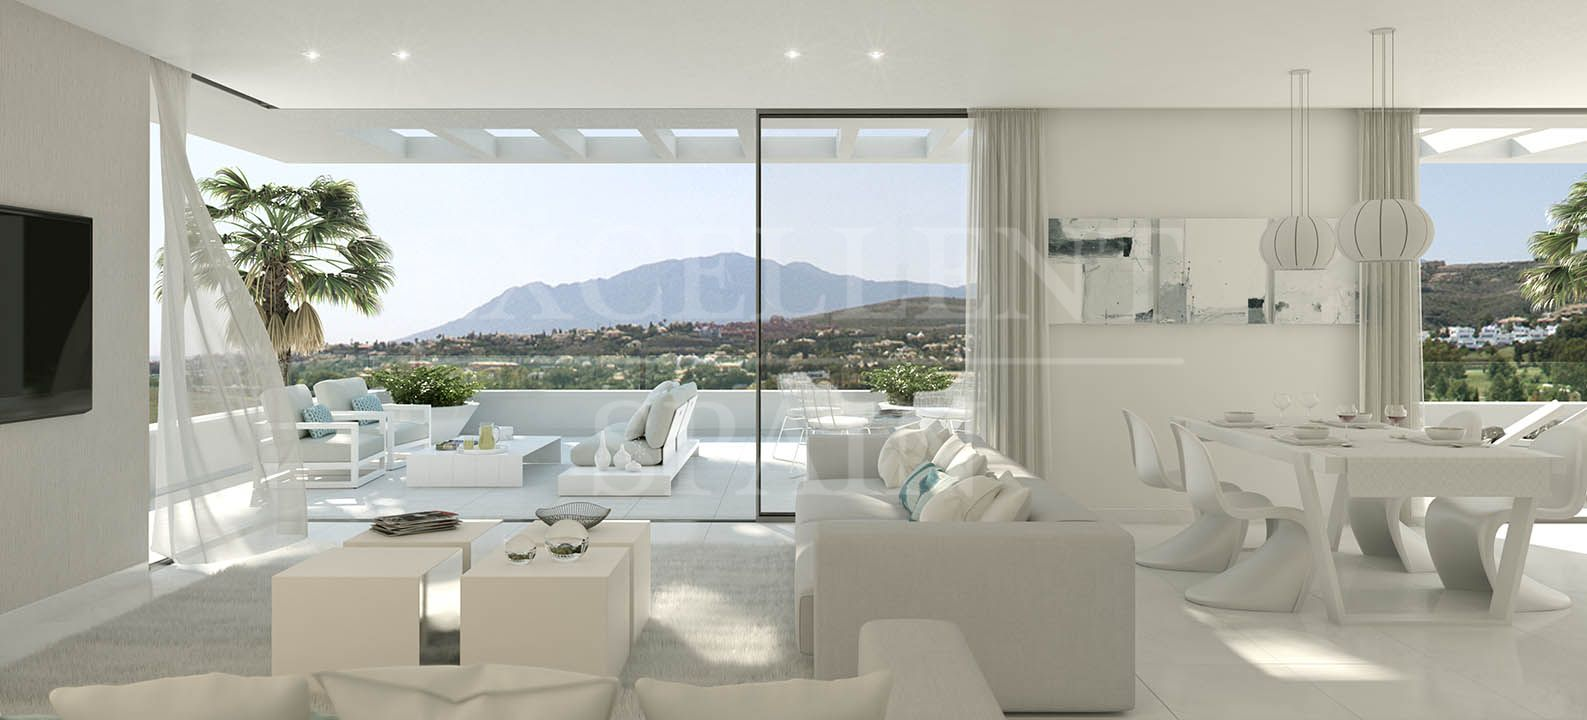 Property development Cataleya, Estepona